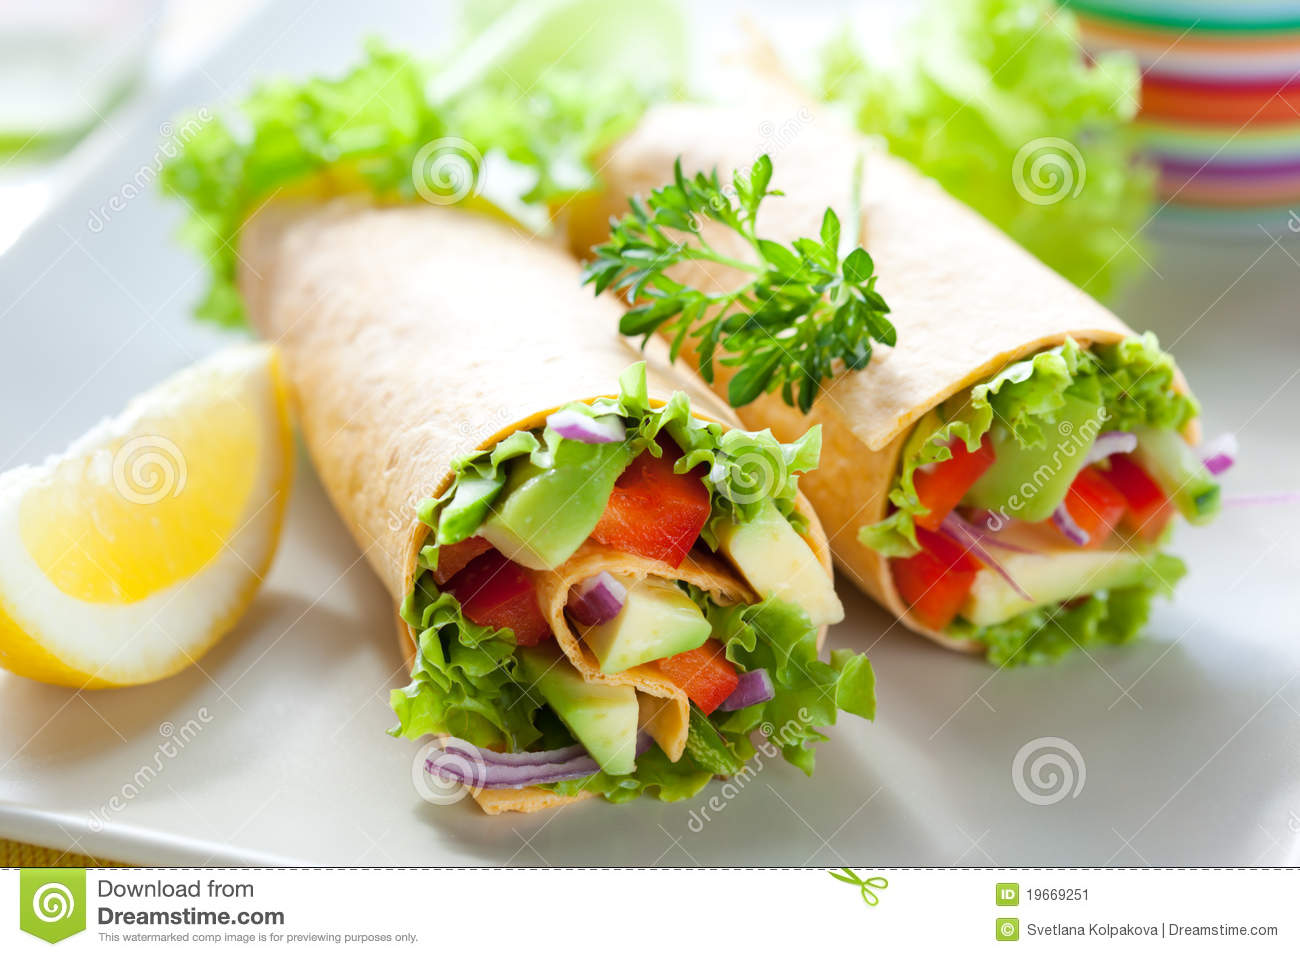 Tortilla wraps stock image. Image of mexican, dinner ...